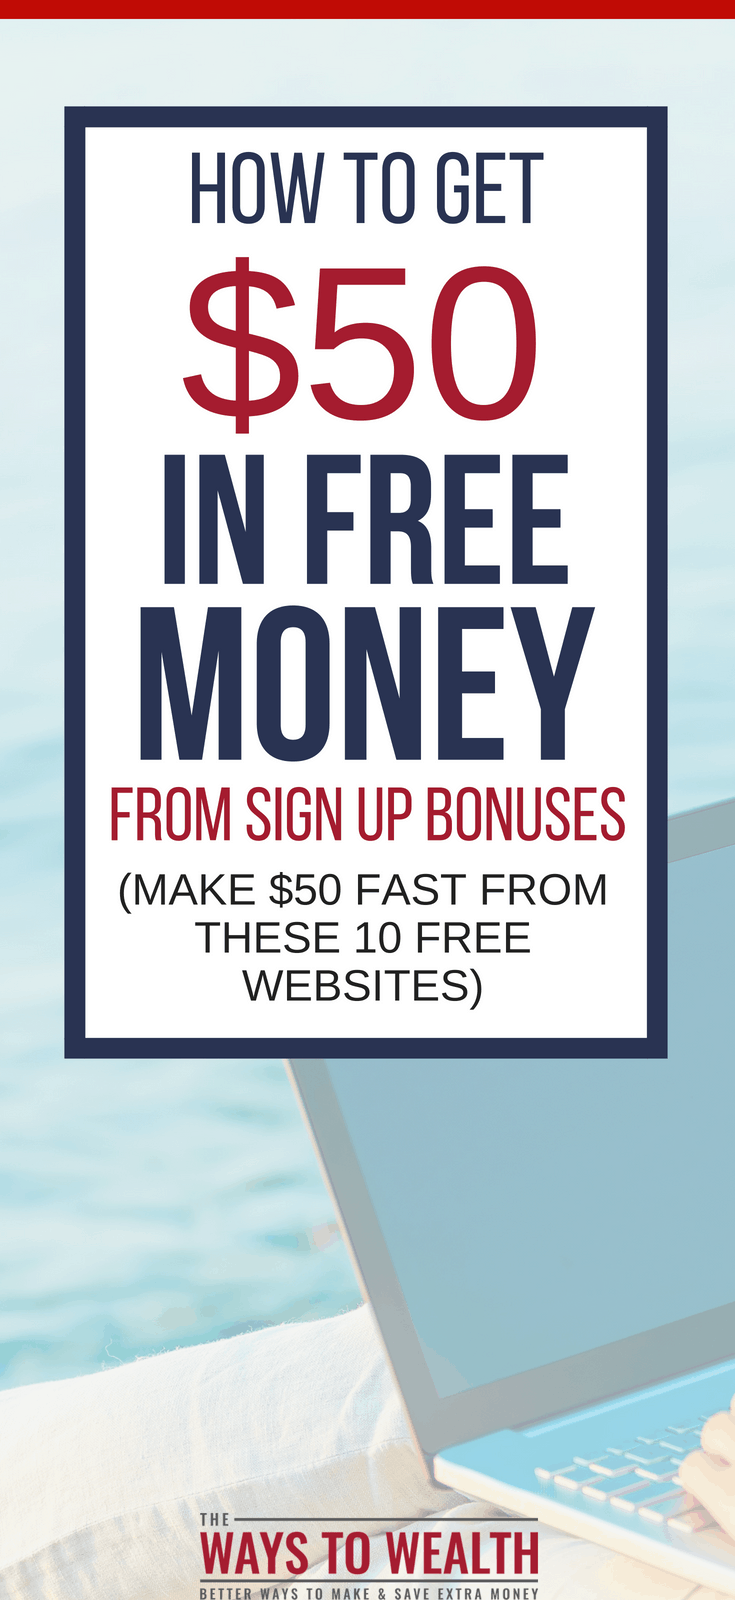 How To Get $50 In Free Money From Sign Up Bonuses free money hacks tips | free money for college | get free money extra cash | websites for making money #thewaystowealth #makemoneyonline #makemoney